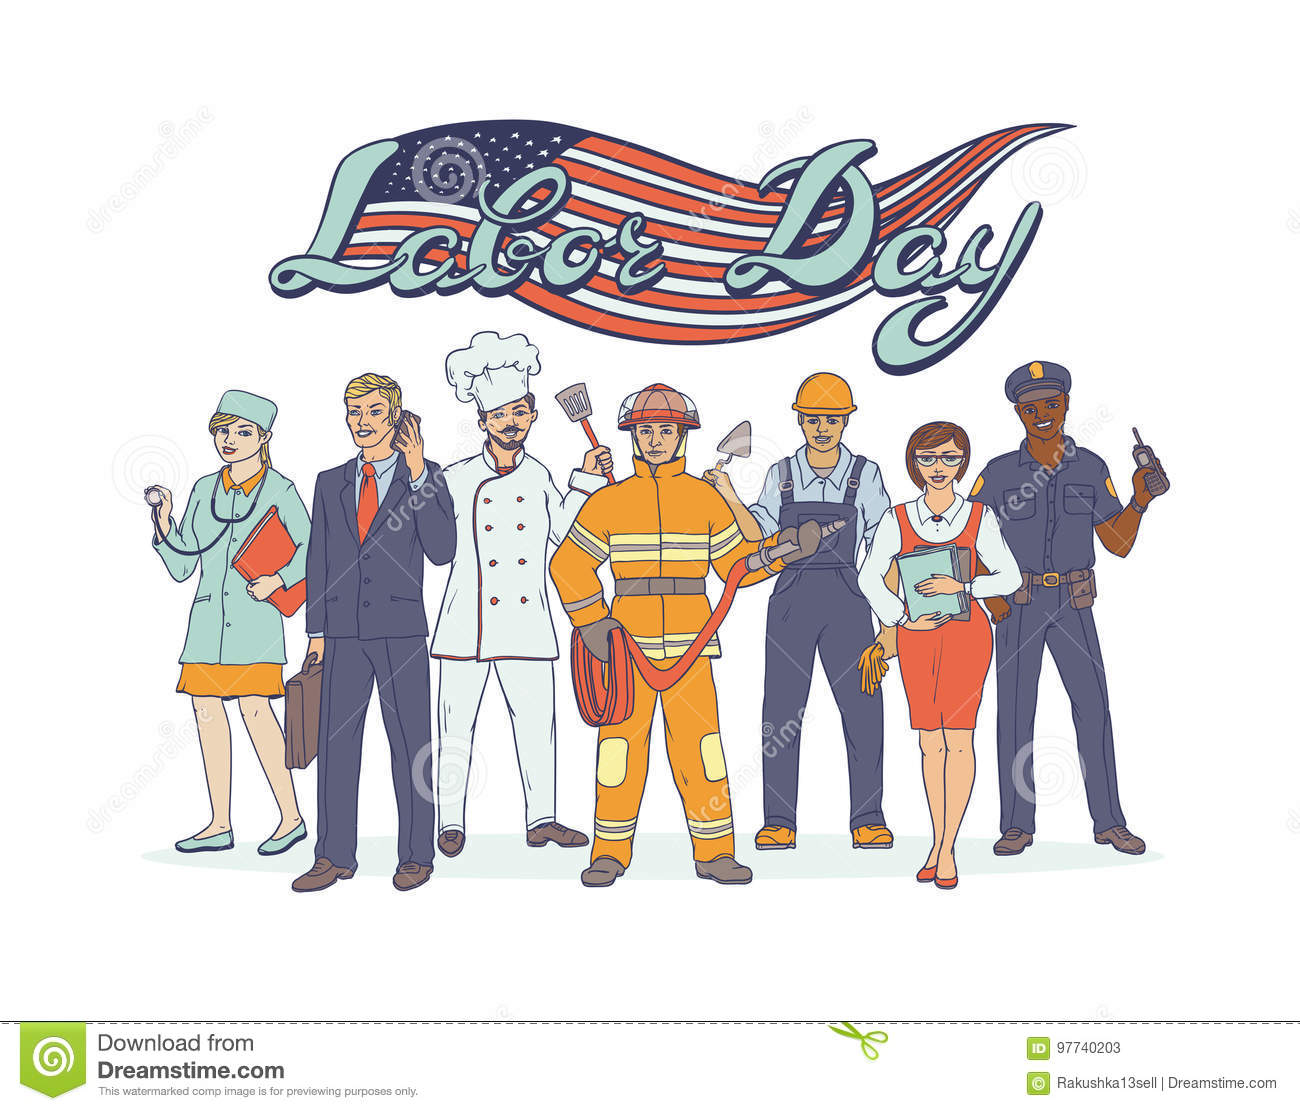 Builders Day: the date of the holiday